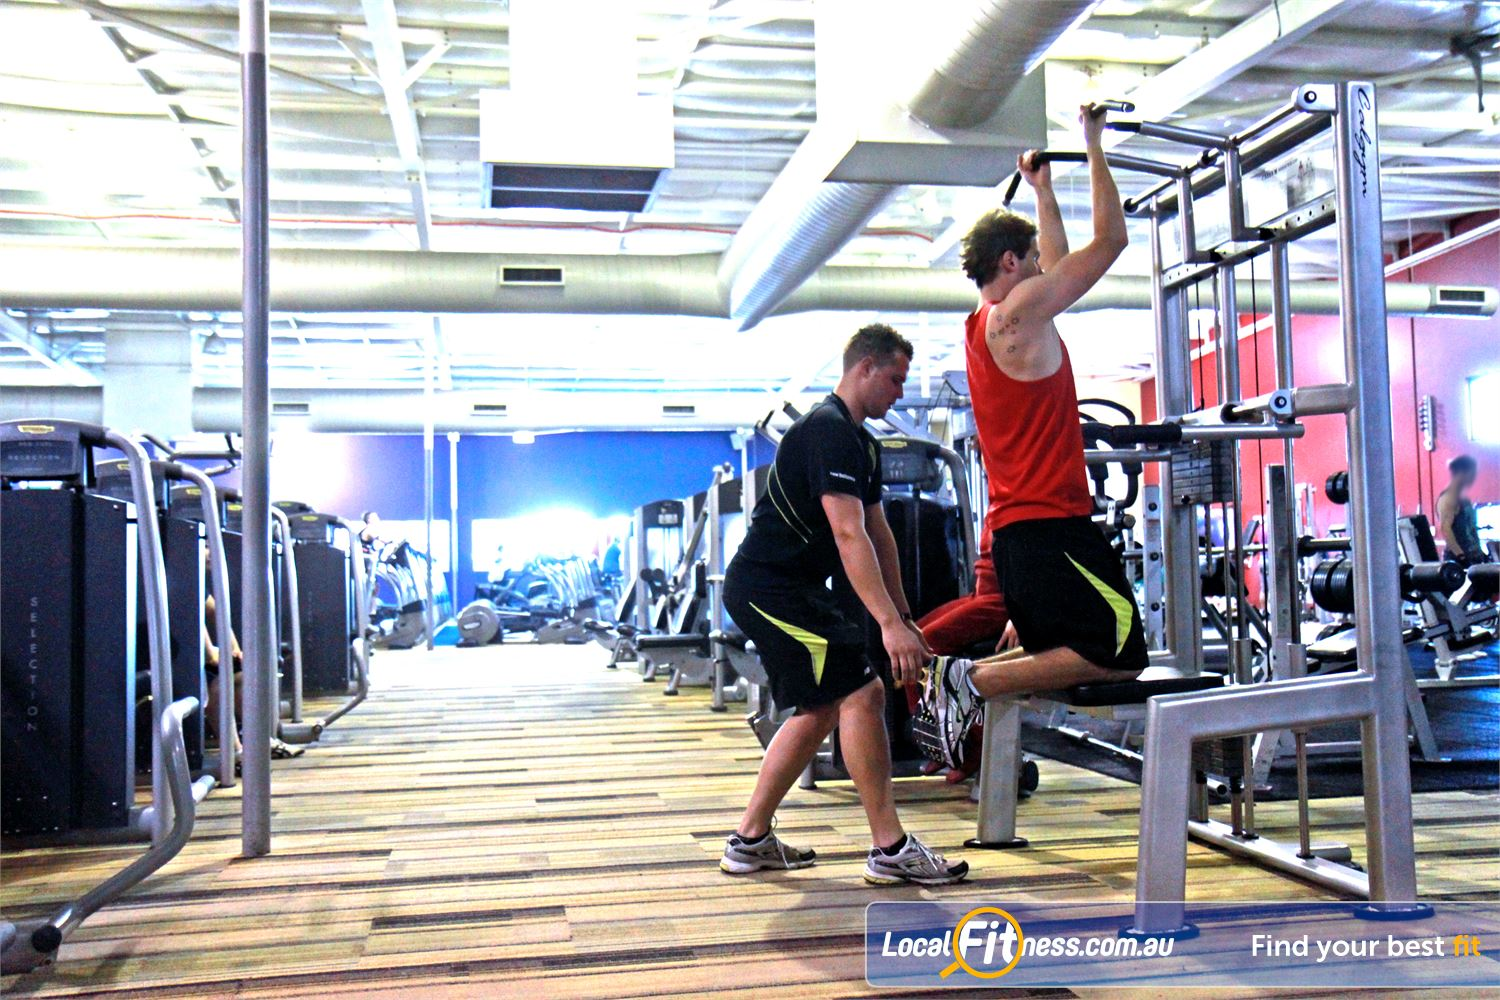 Goodlife Health Clubs Cannington Our Cannington gym offers many gym floor programs with qualified staff.